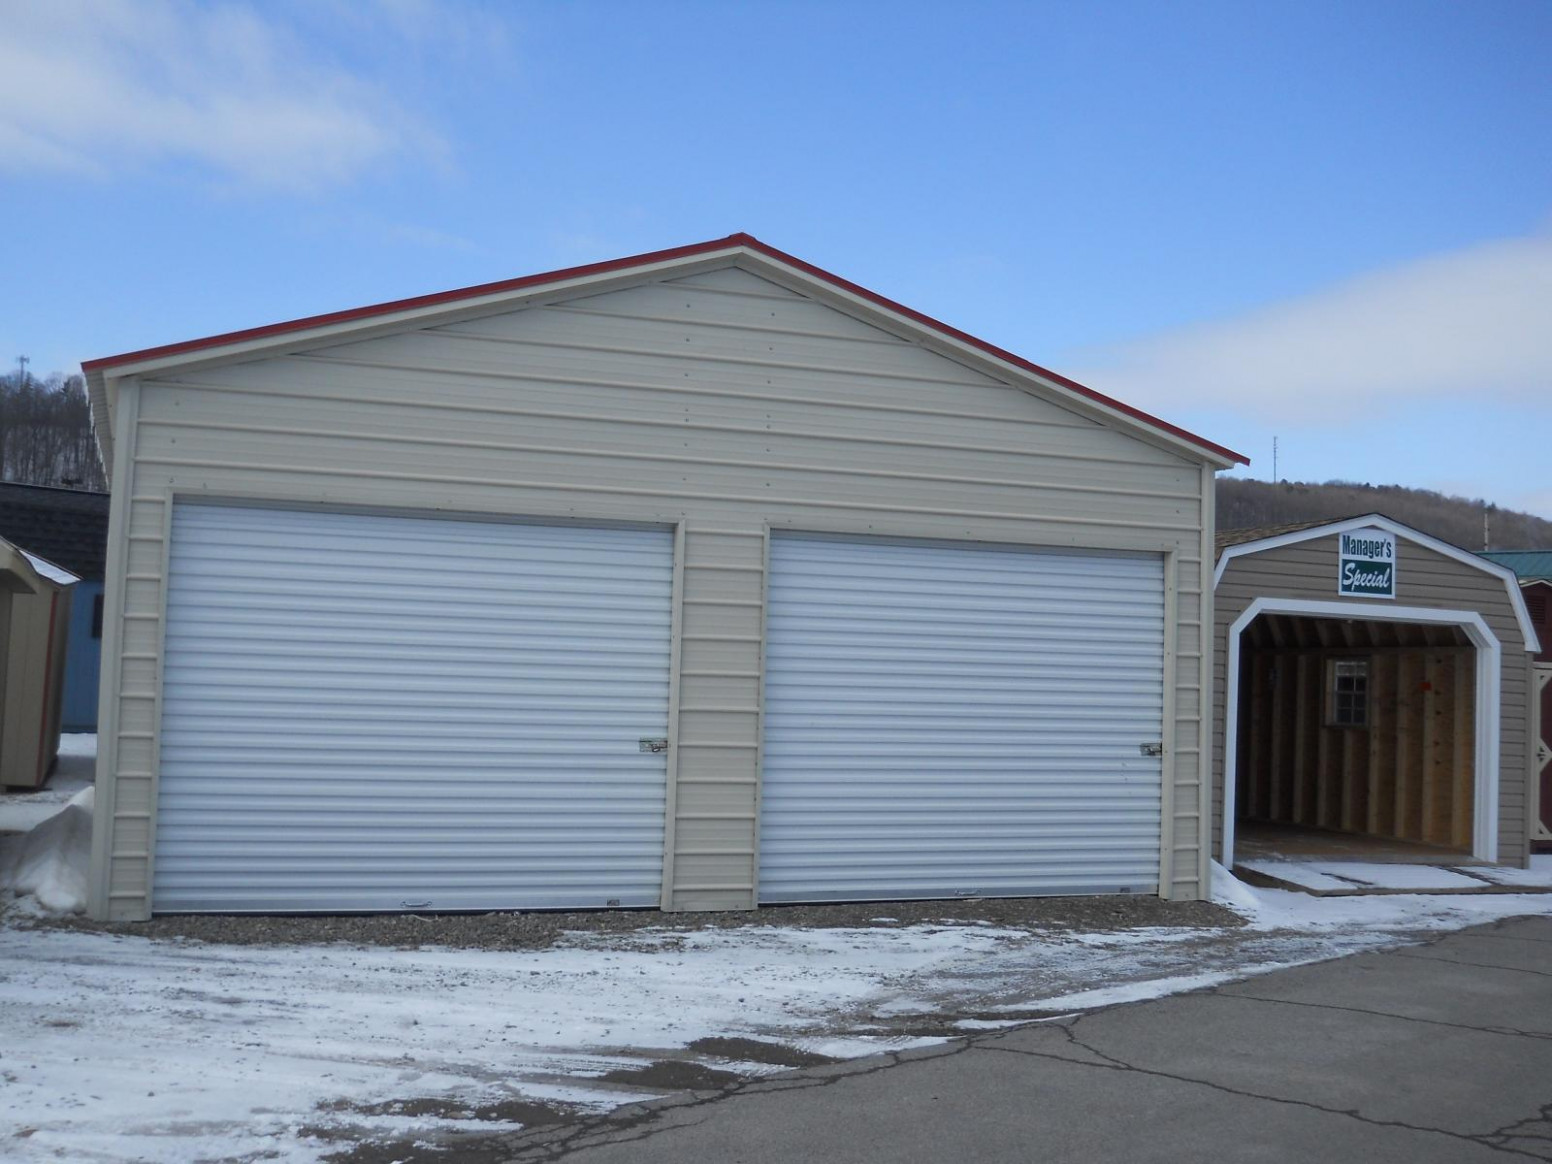 9 X 9 Fully Enclosed 9 Door Carport | Pine Creek Structures Carport Roll Up Garage Door